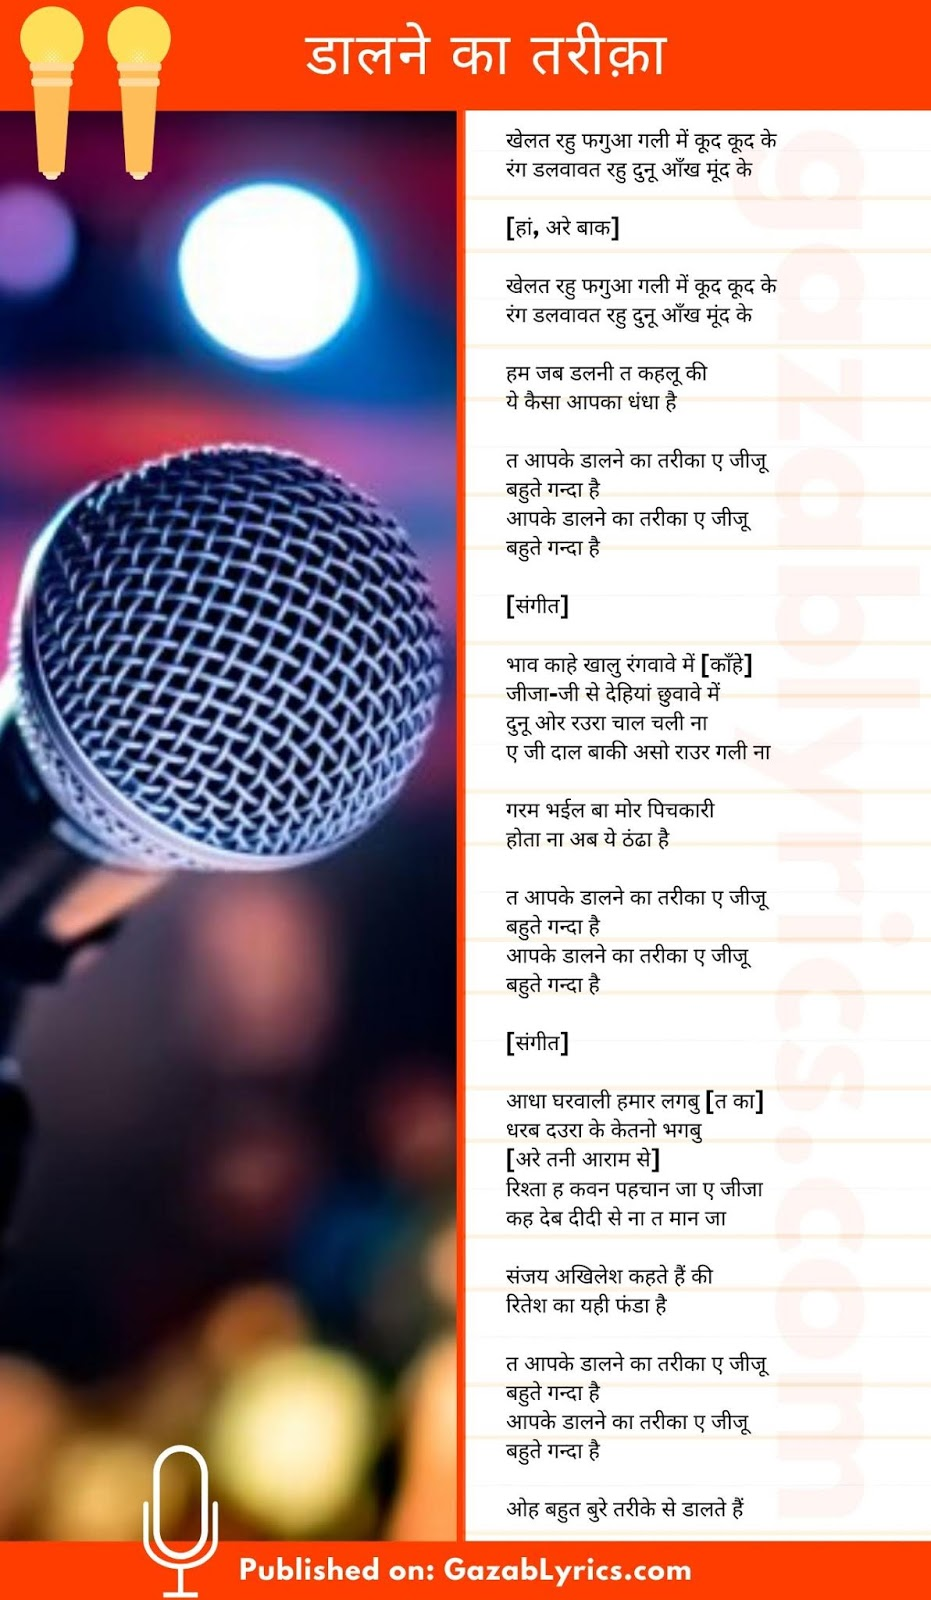 Dalne Ka Tarika song lyrics image